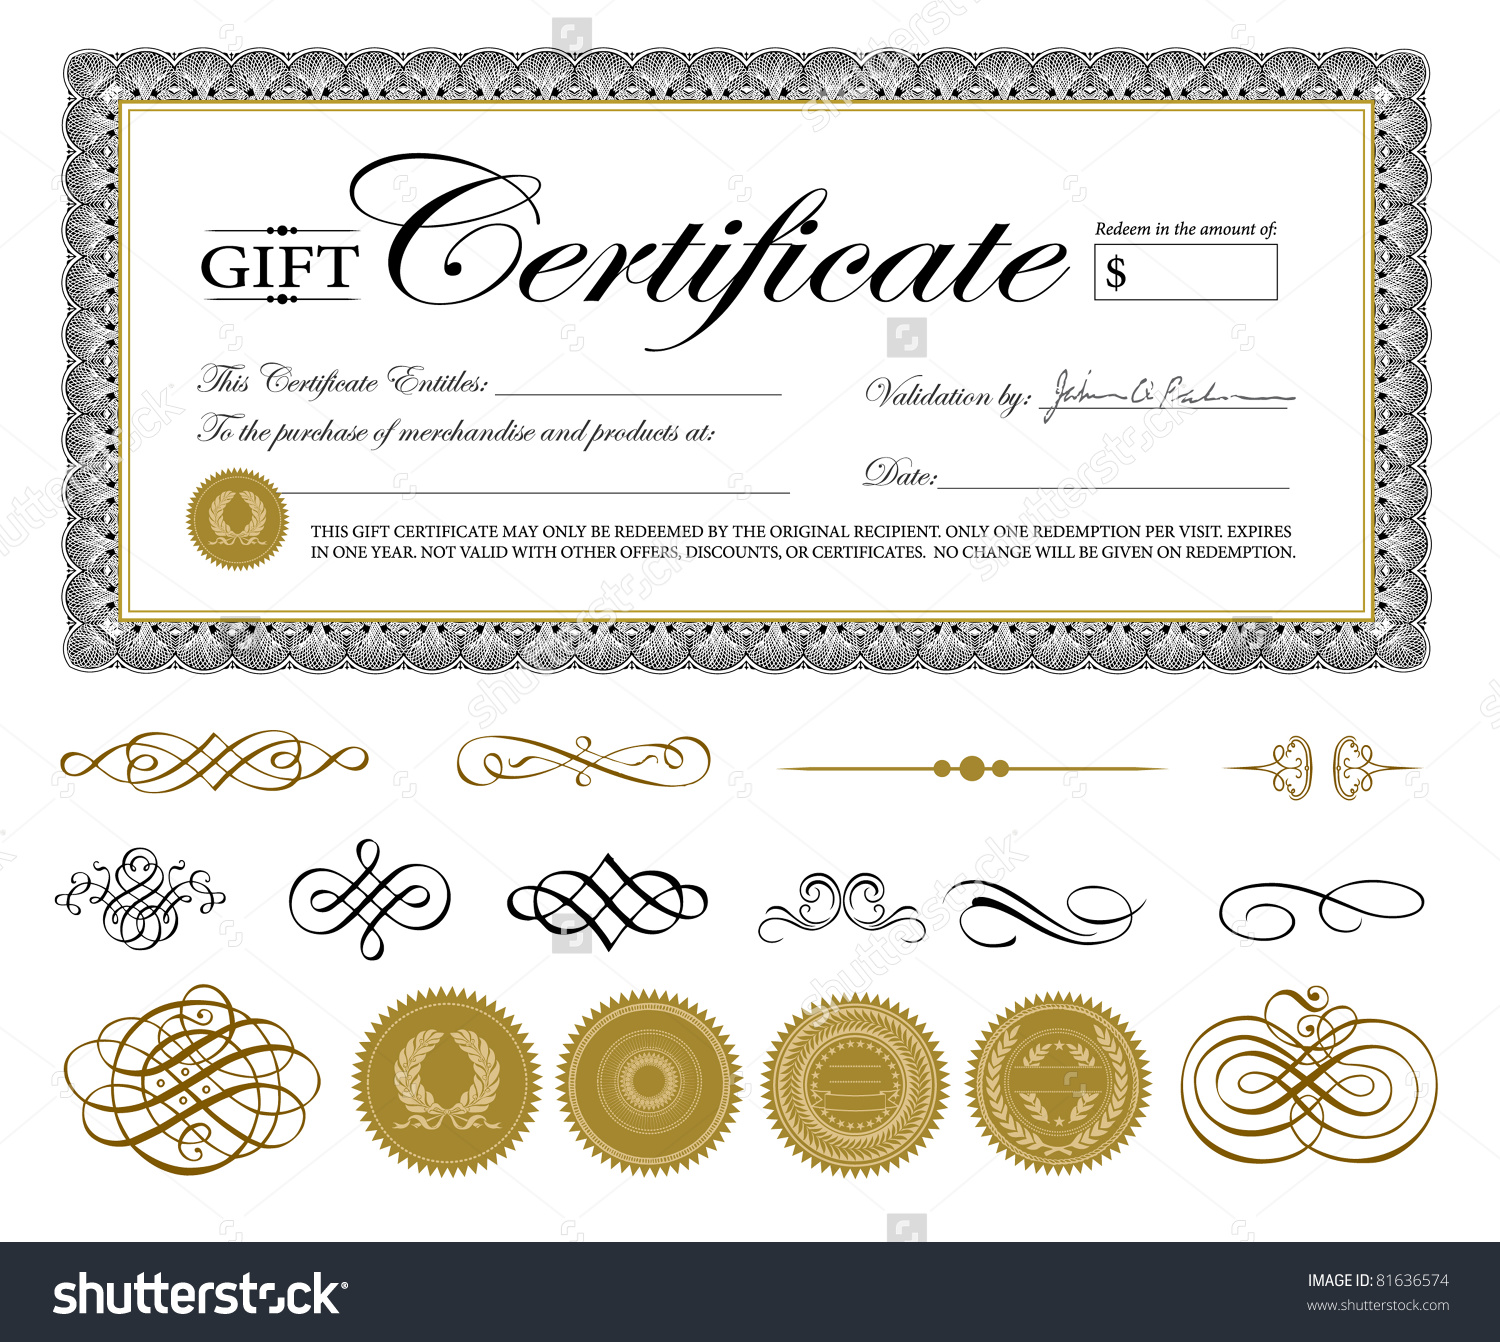 Gift certificate template fotolip rich image and wallpaper gift certificate template 1betcityfo Image collections